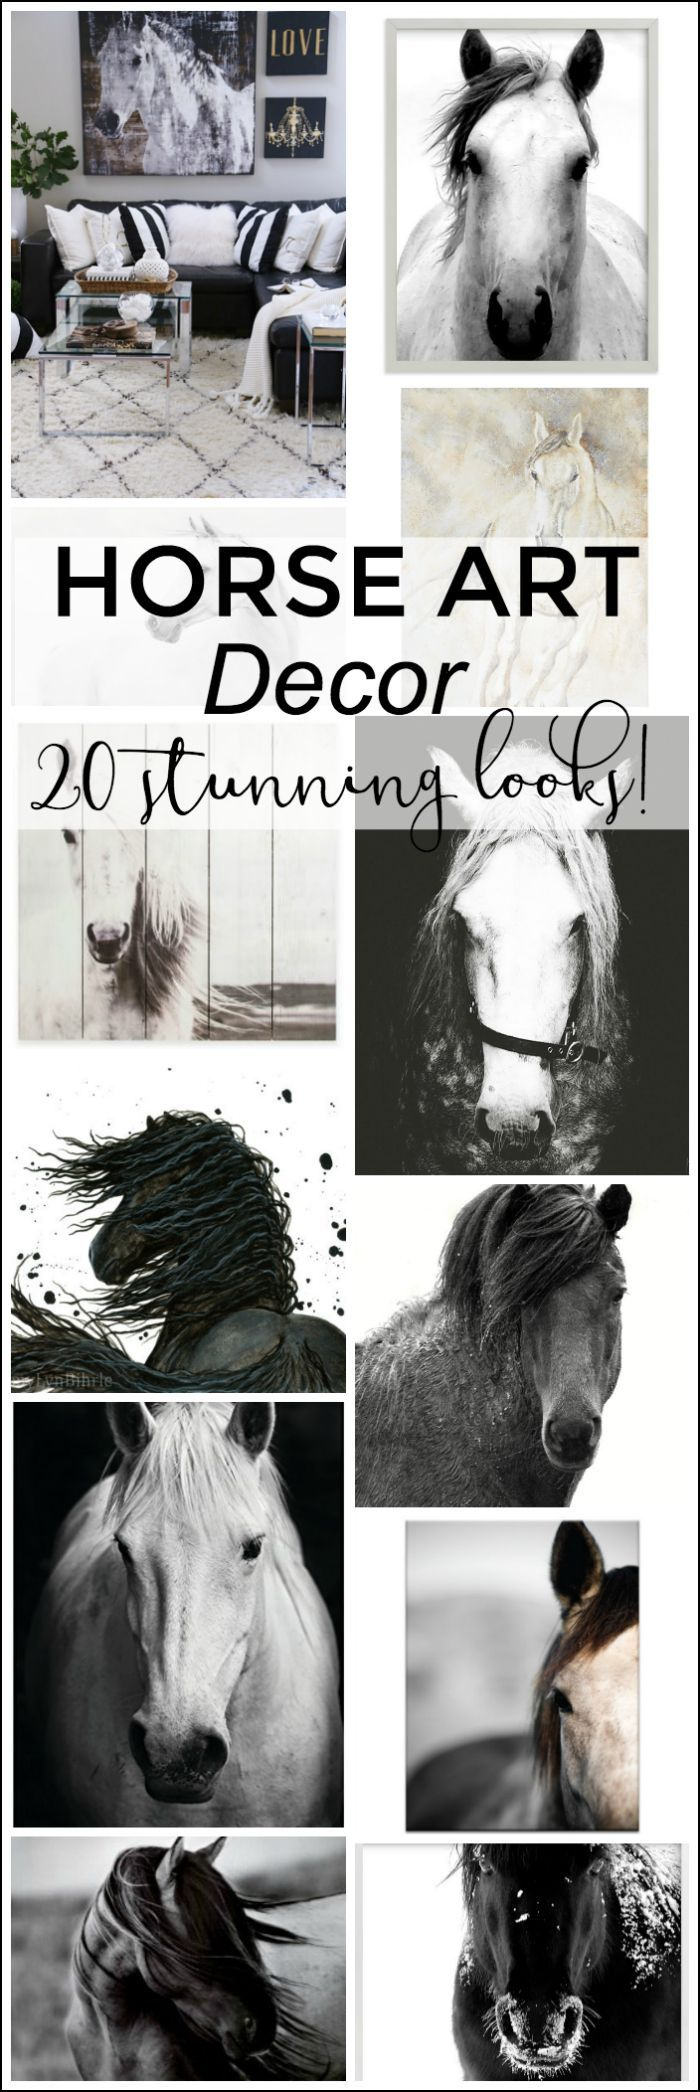 Love Horses? Me too!! Everyone asks me where I bought the horse art that hangs in my family room. See where I bought it and see 20 gorgeous horse art looks for your home!Horse art is a big design trend right now - decorate your home with your passion for